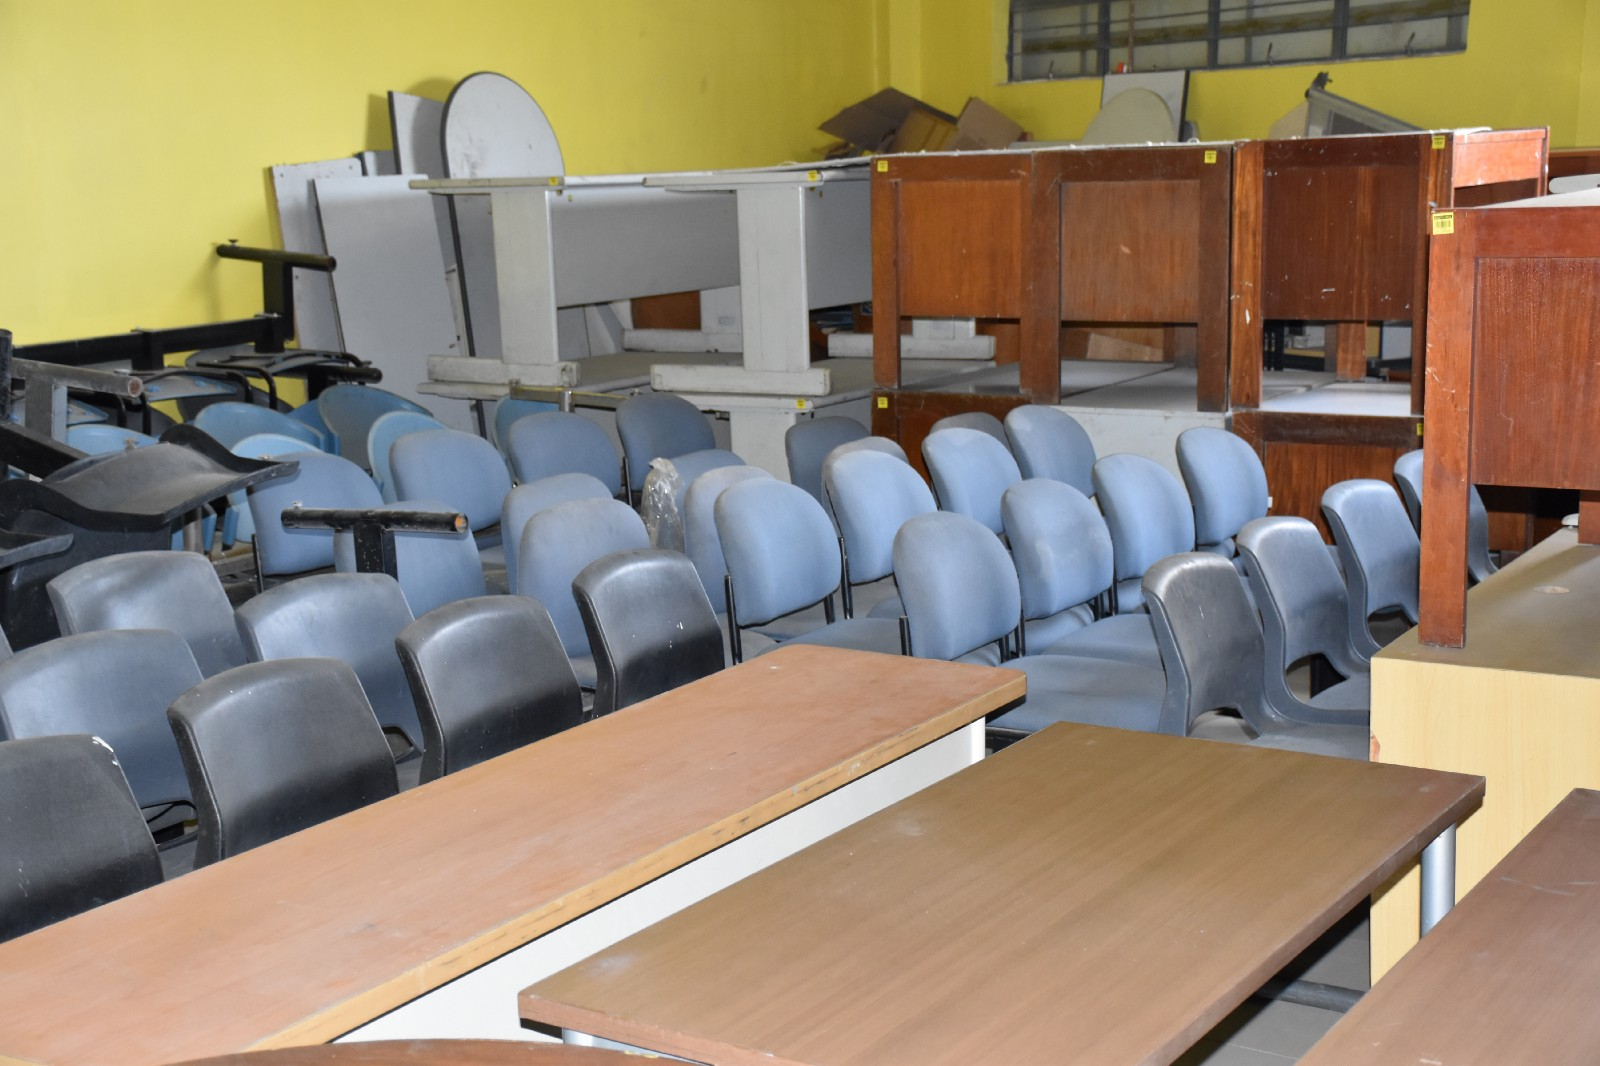 Used office furniture 4 sale in san fernando pampanga